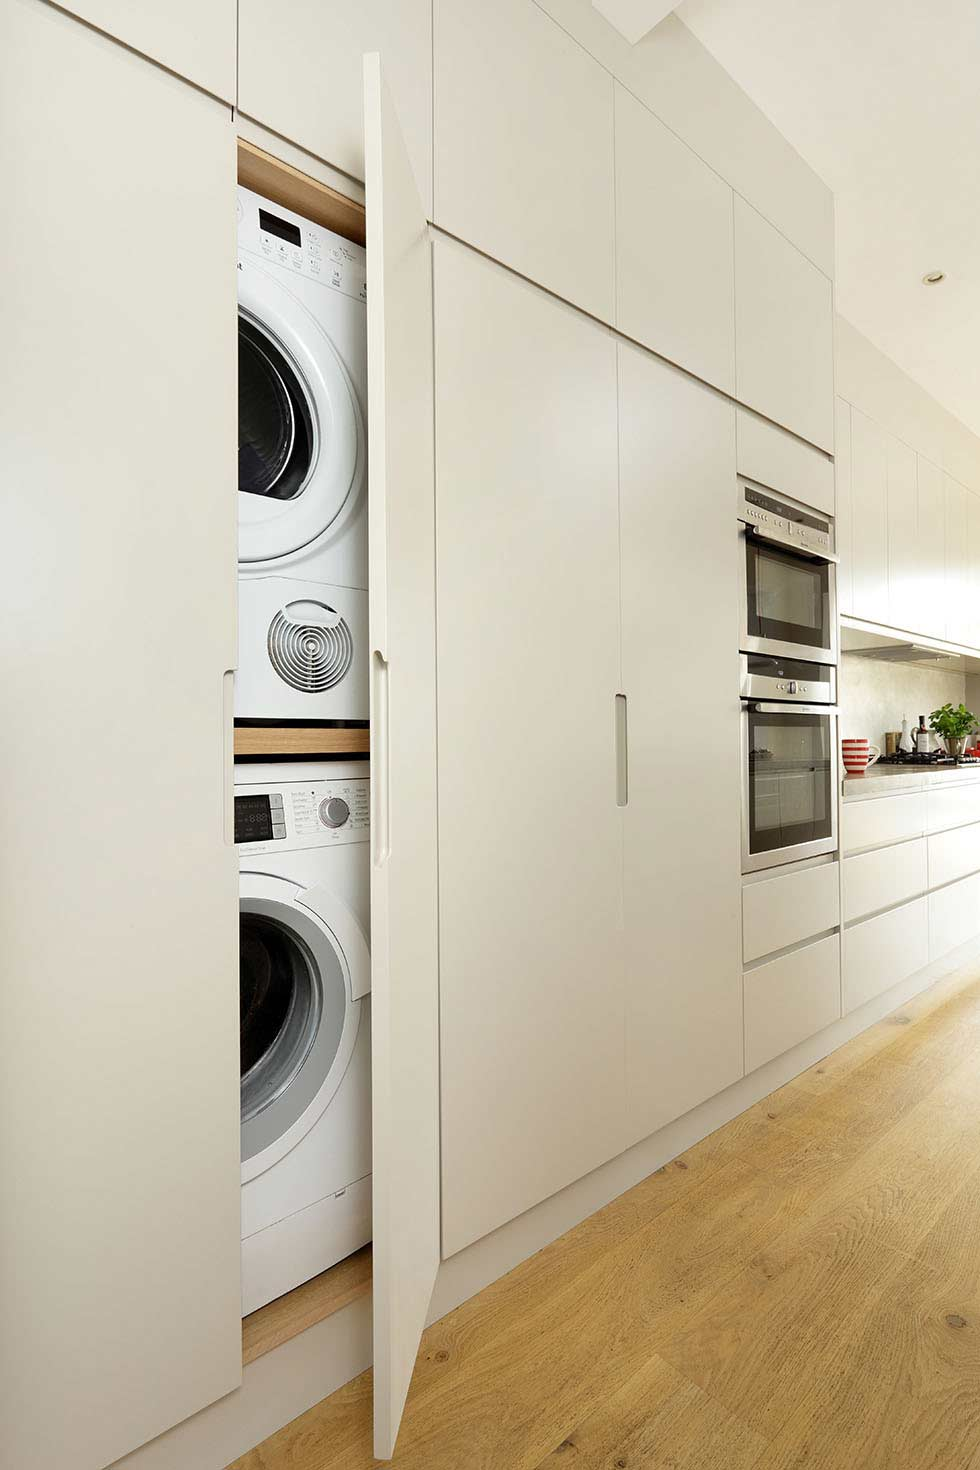 HIDE-AWAY-BIG-APPLIANCES-hide-away-a-utility-space-Cue-&-Co-of-London-hi-res